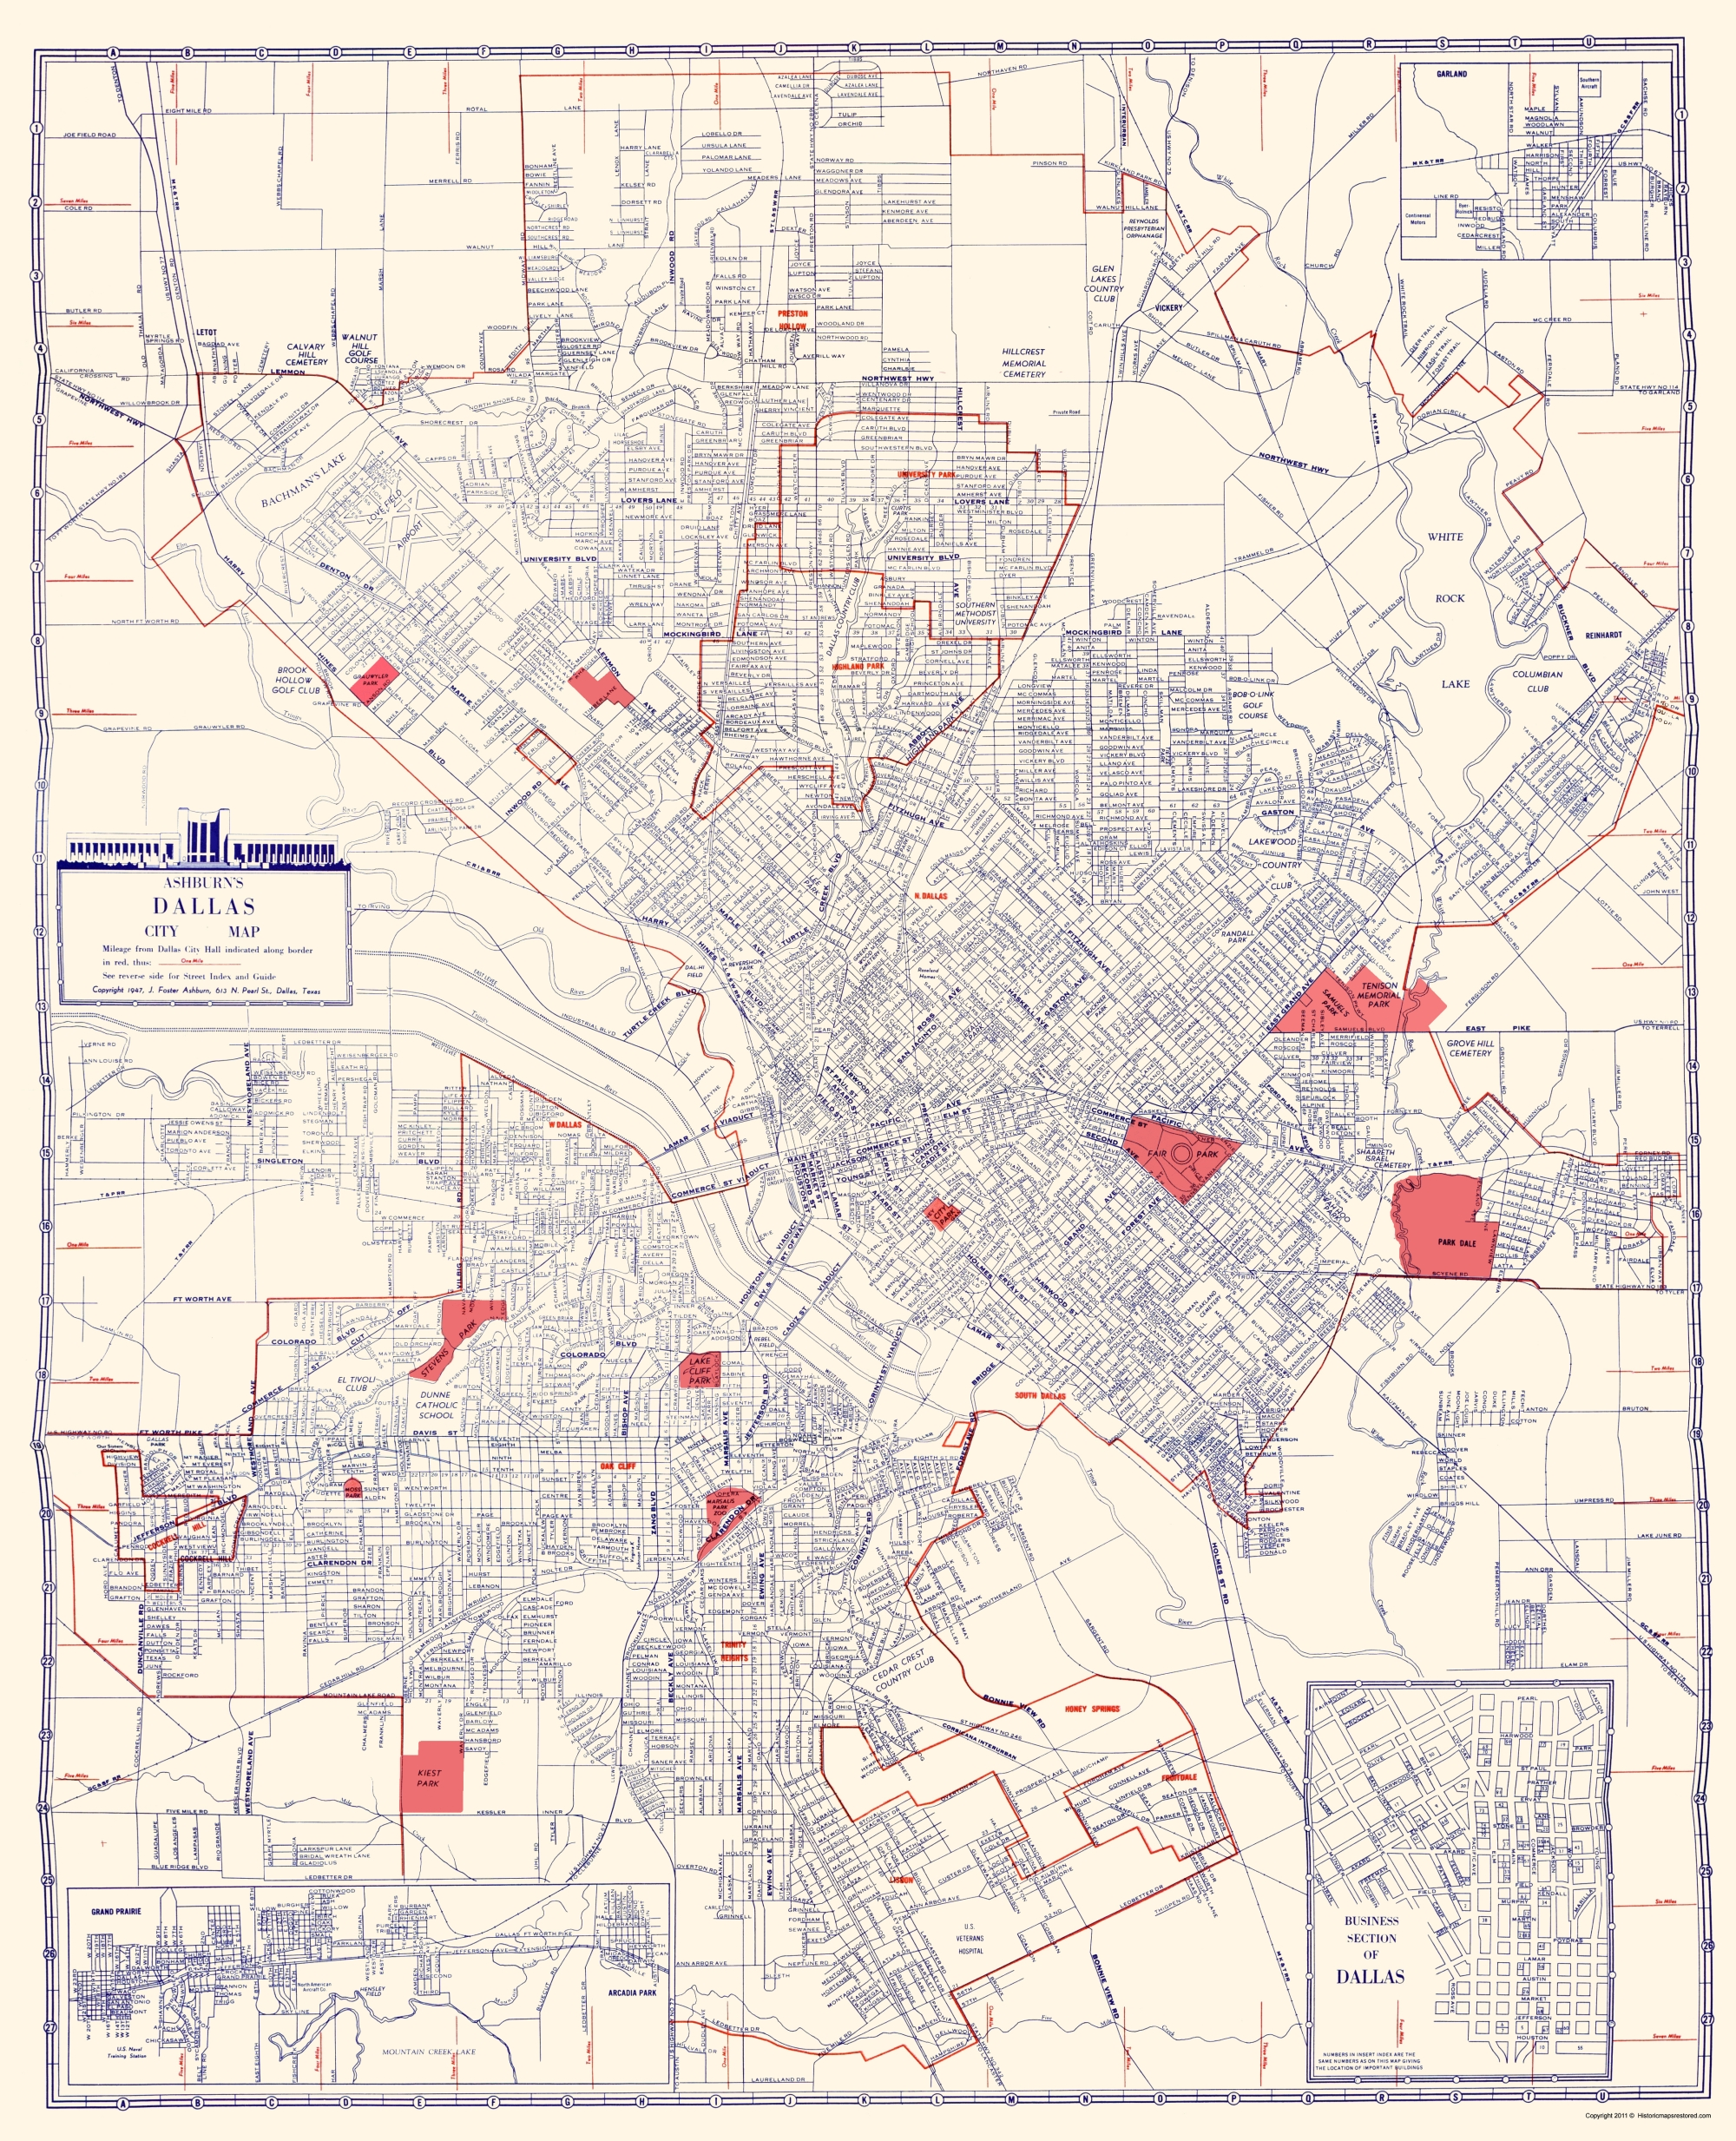 Old Dallas Map.Old City Map Dallas Texas Ashburn 1947